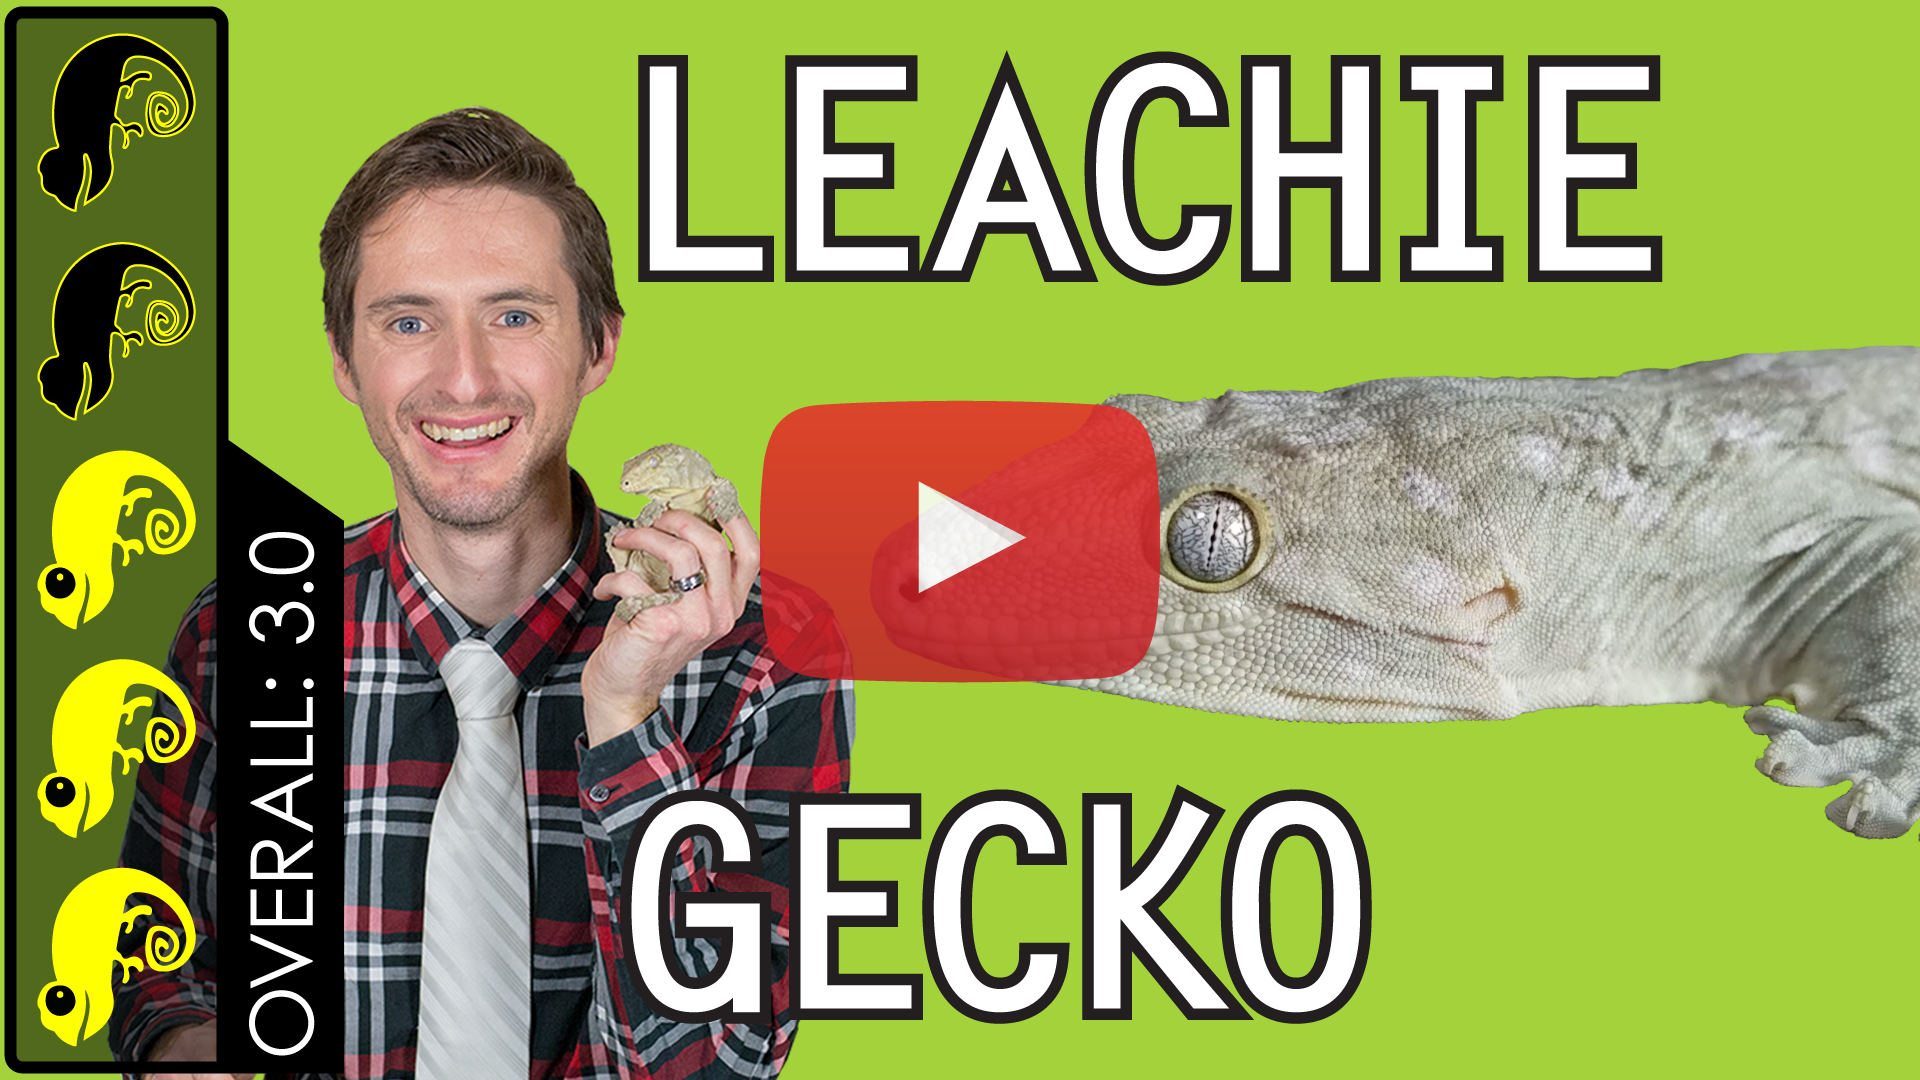 Leachie-Gecko-Overview-Thumbnail-Play